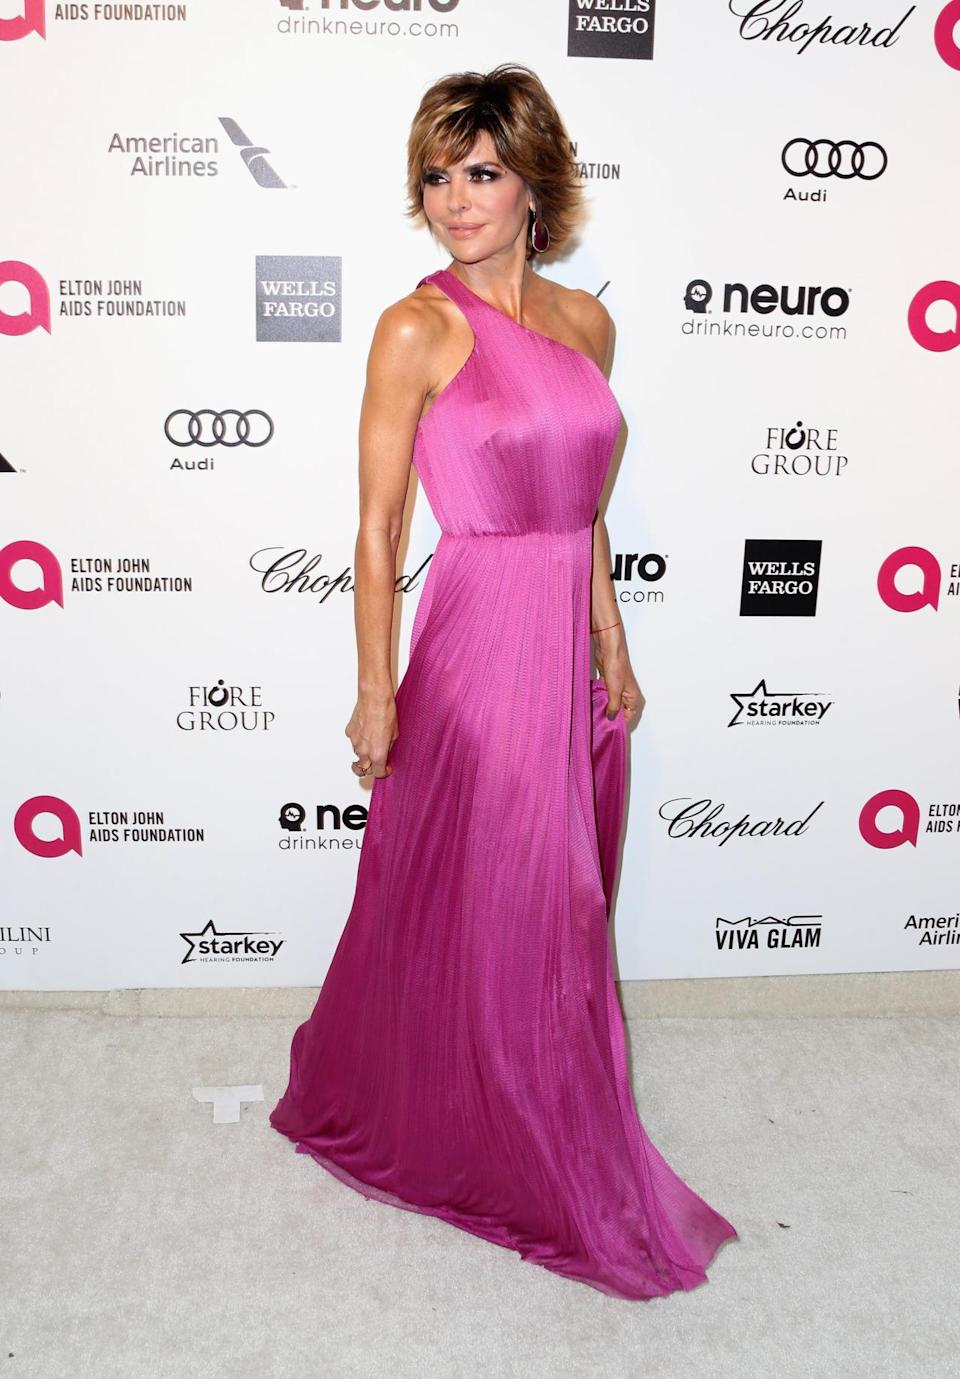 The Real Housewife wore a pink gown one-shoulder silk gown that looks like a style favorite amongst the prom set but she pulls it off with aplomb at 51.